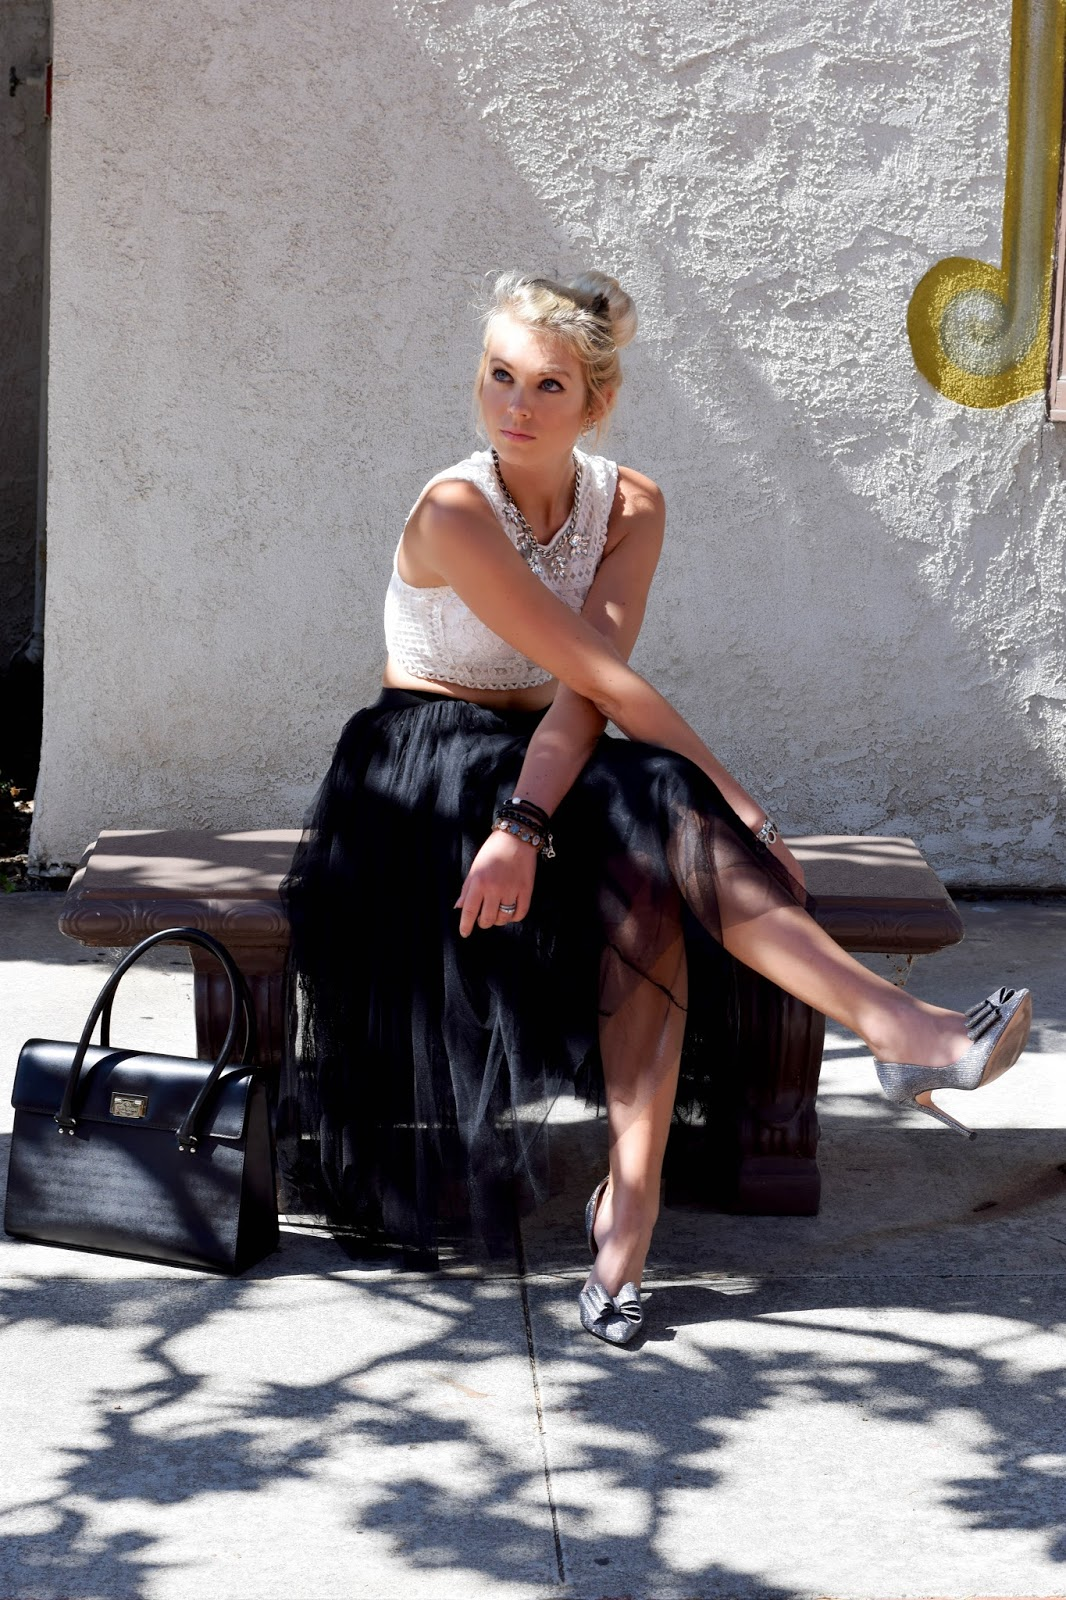 zaful skirt, tulle skirt, how to wear tulle skirt, how to style tulle skirt, corp top, kate spade, kate spade purse, tulle